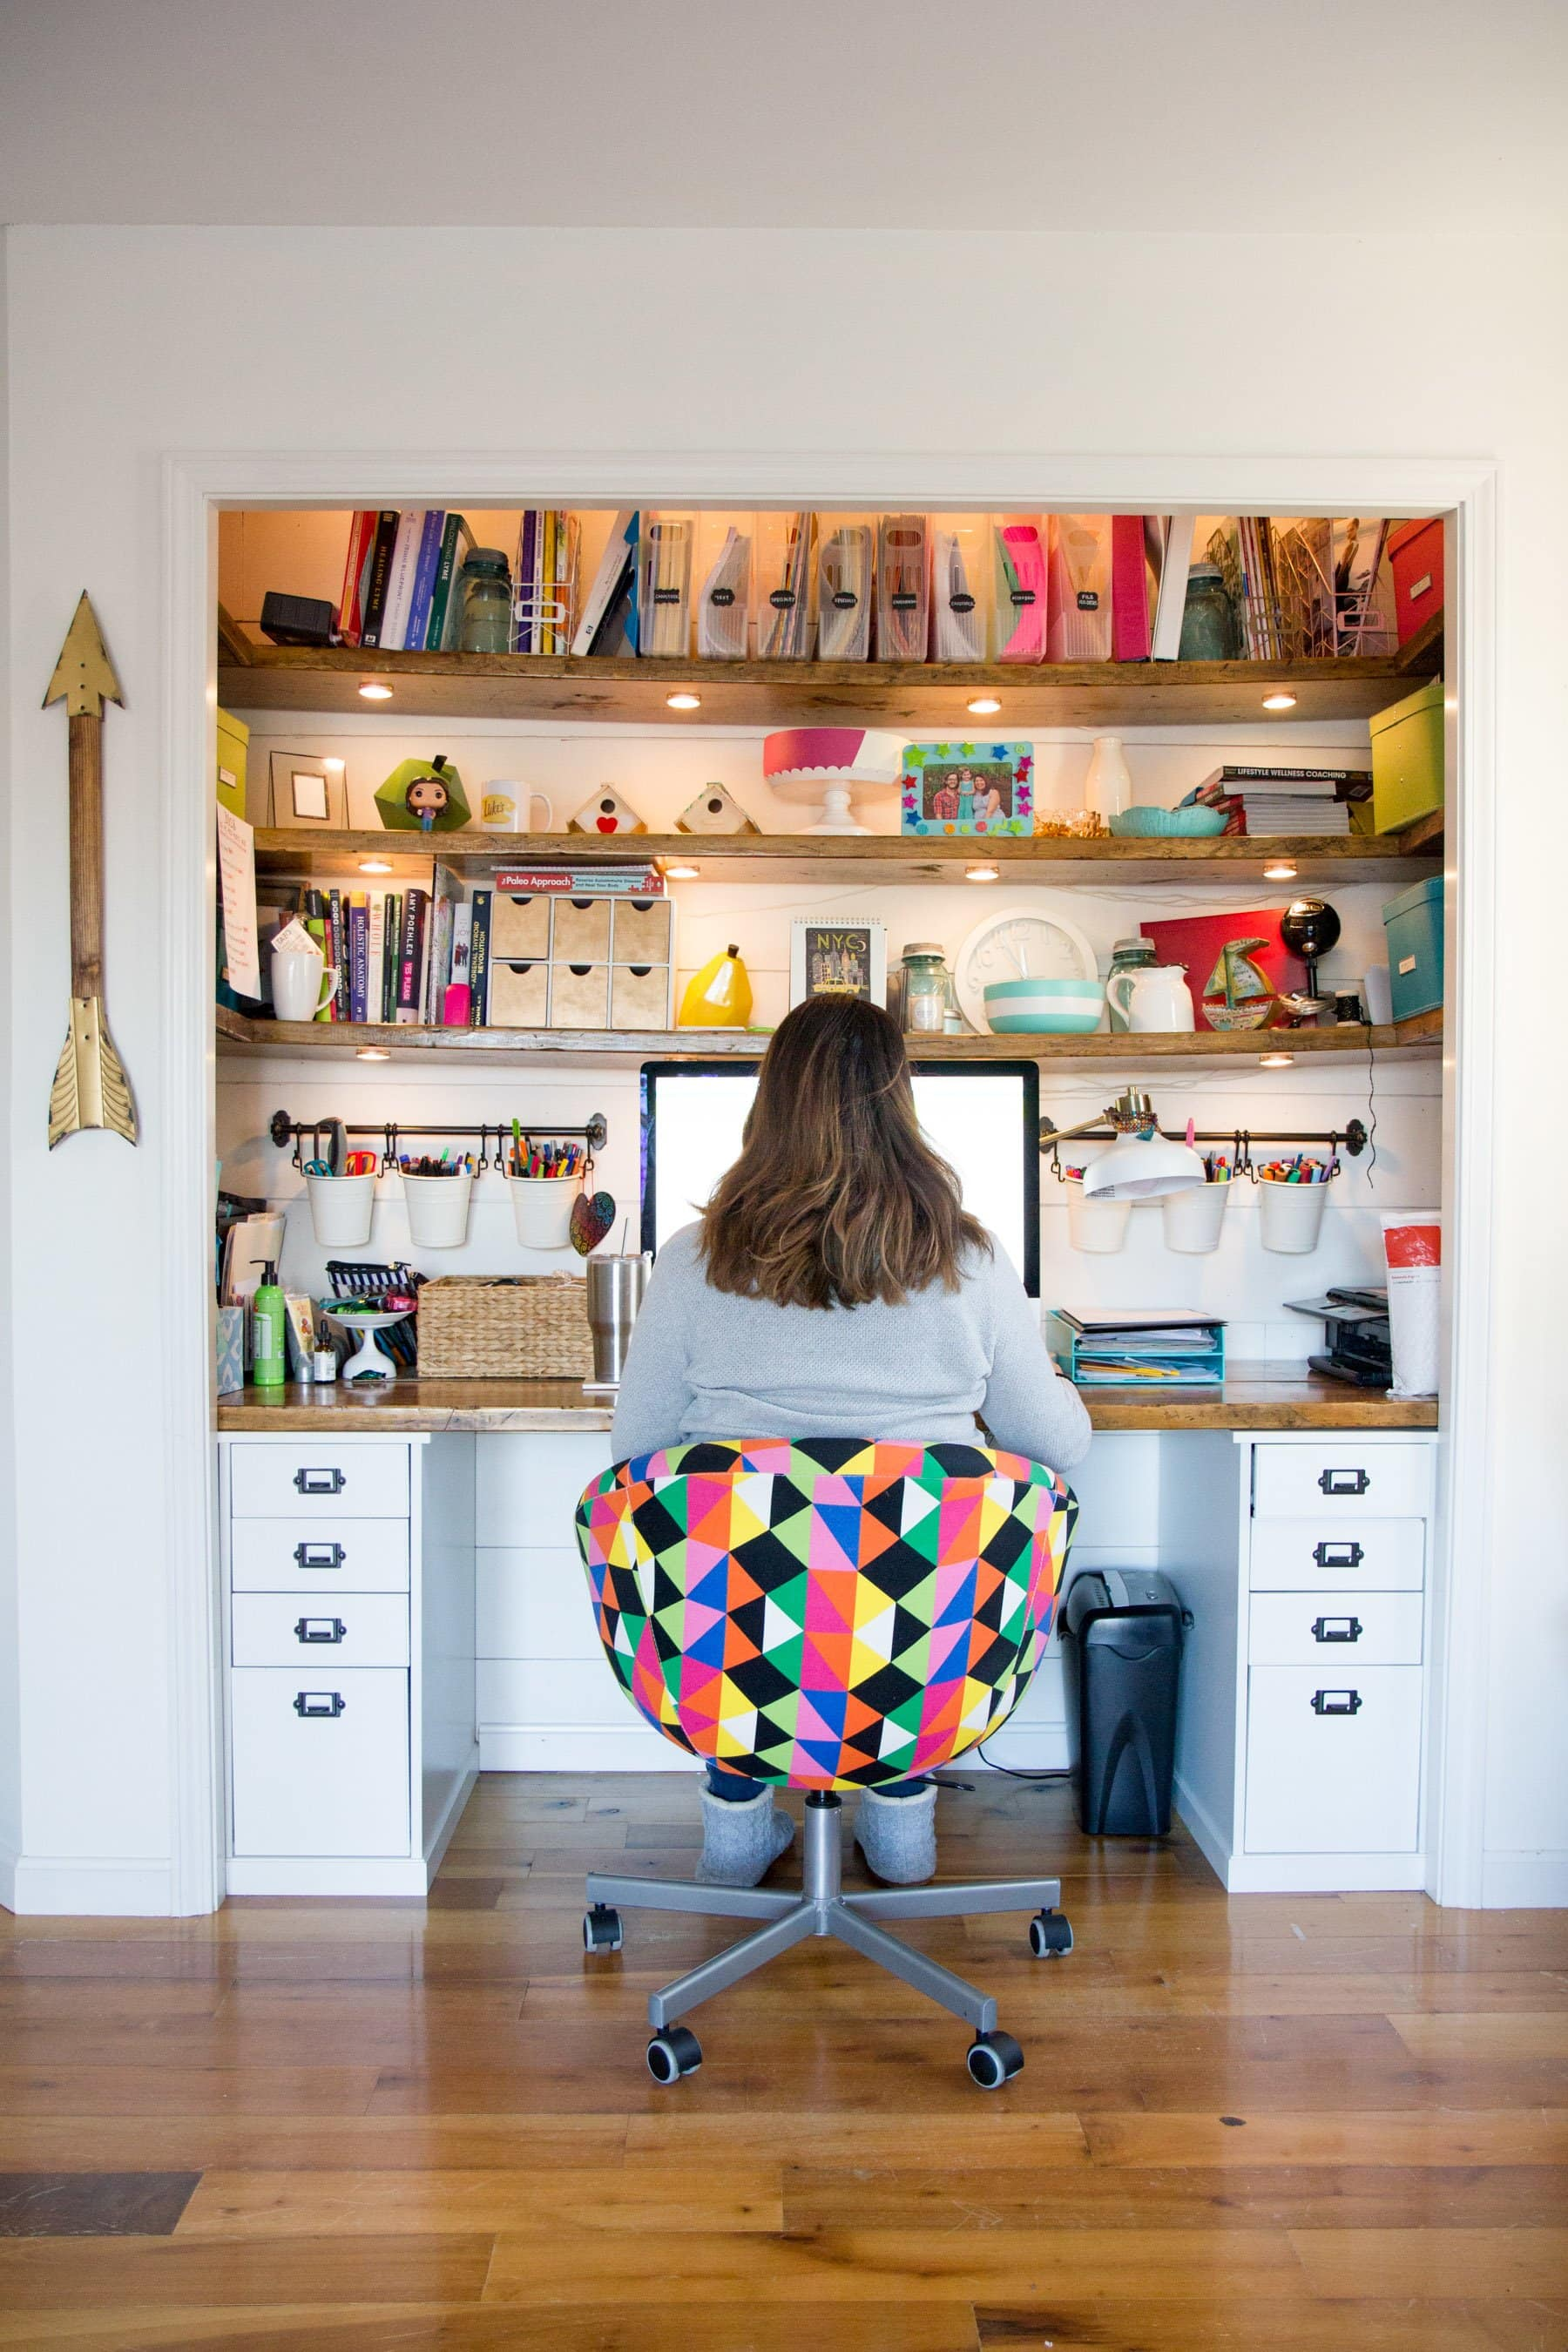 Woman sitting at desk with shelves above full of books